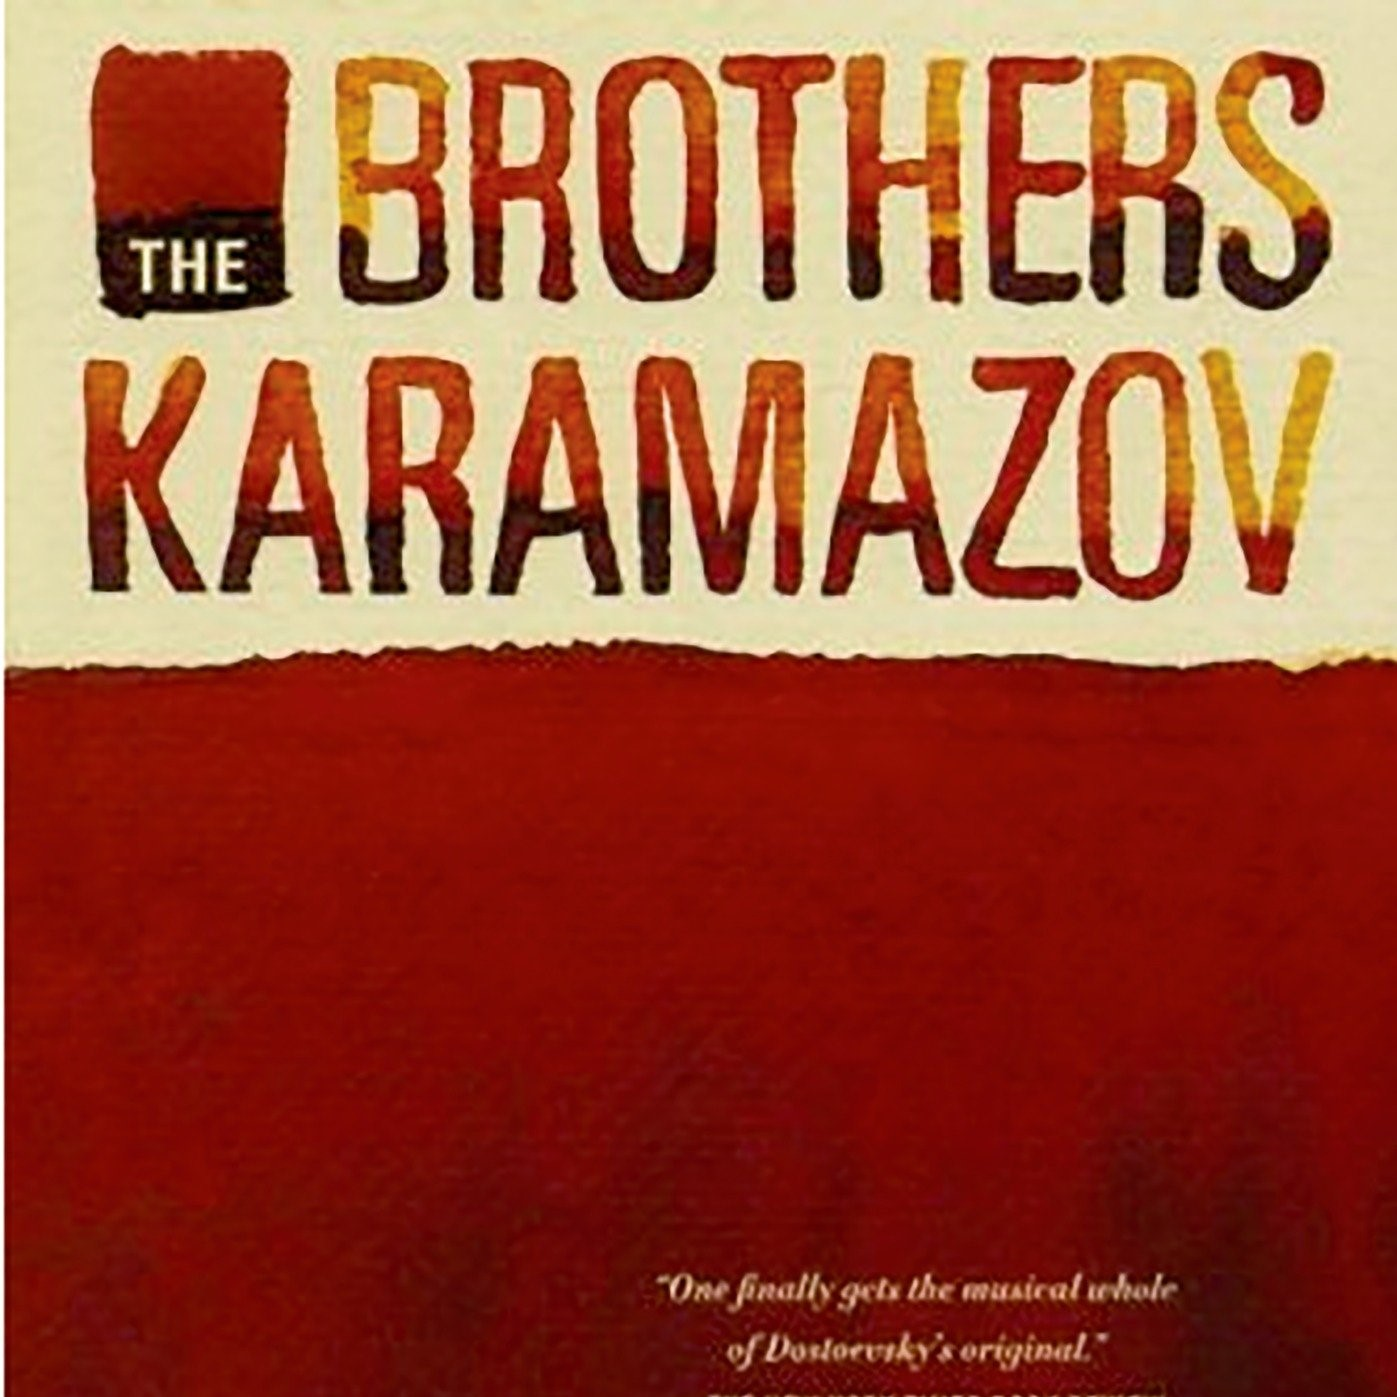 The Brother Karamazov cover image. Roll over for description